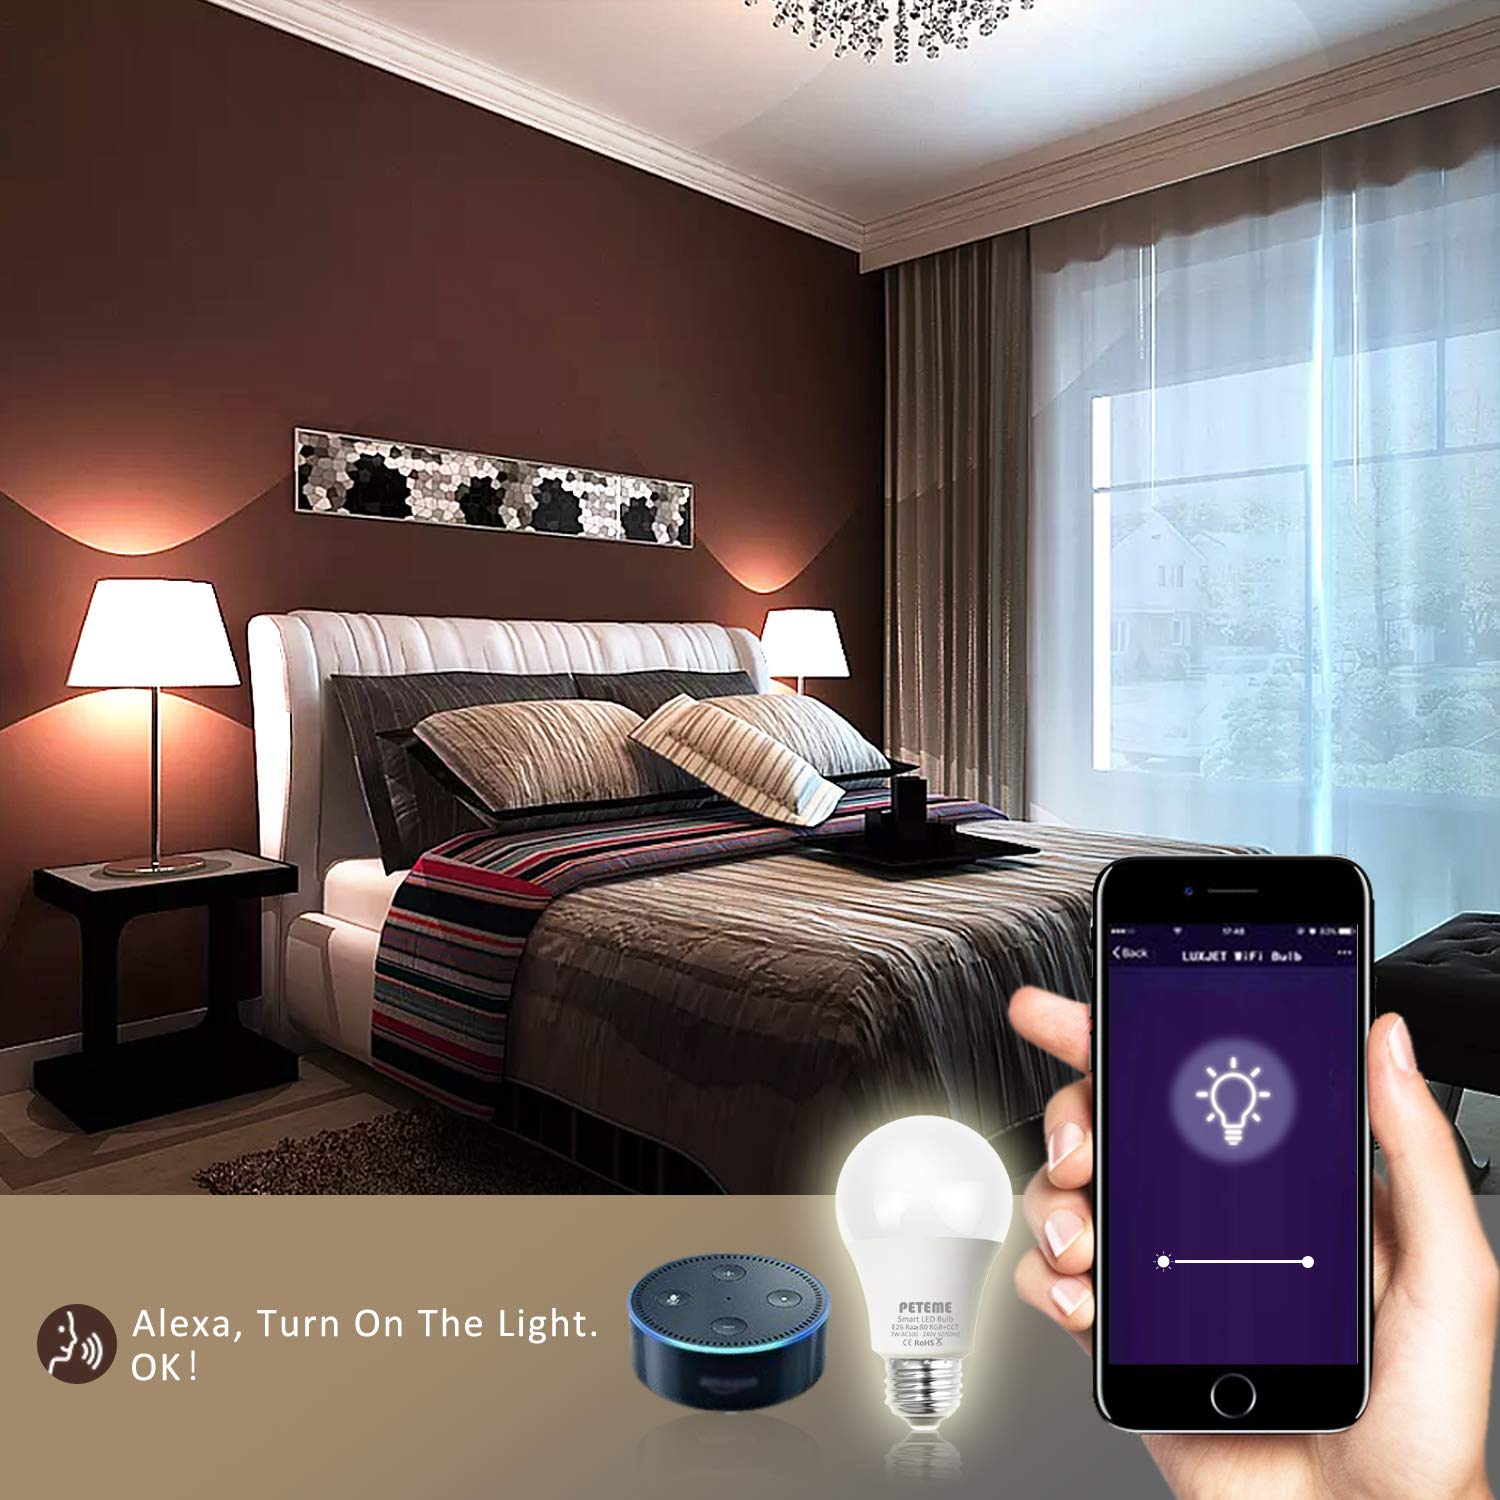 Smart LED Light Bulb E26 WiFi Multicolor Light Bulb Work with Siri,Alexa, Echo, Google Home and IFTTT (No Hub Required), Peteme A19 60W Equivalent RGB Color Changing Bulb (2 Pack) by Peteme (Image #5)